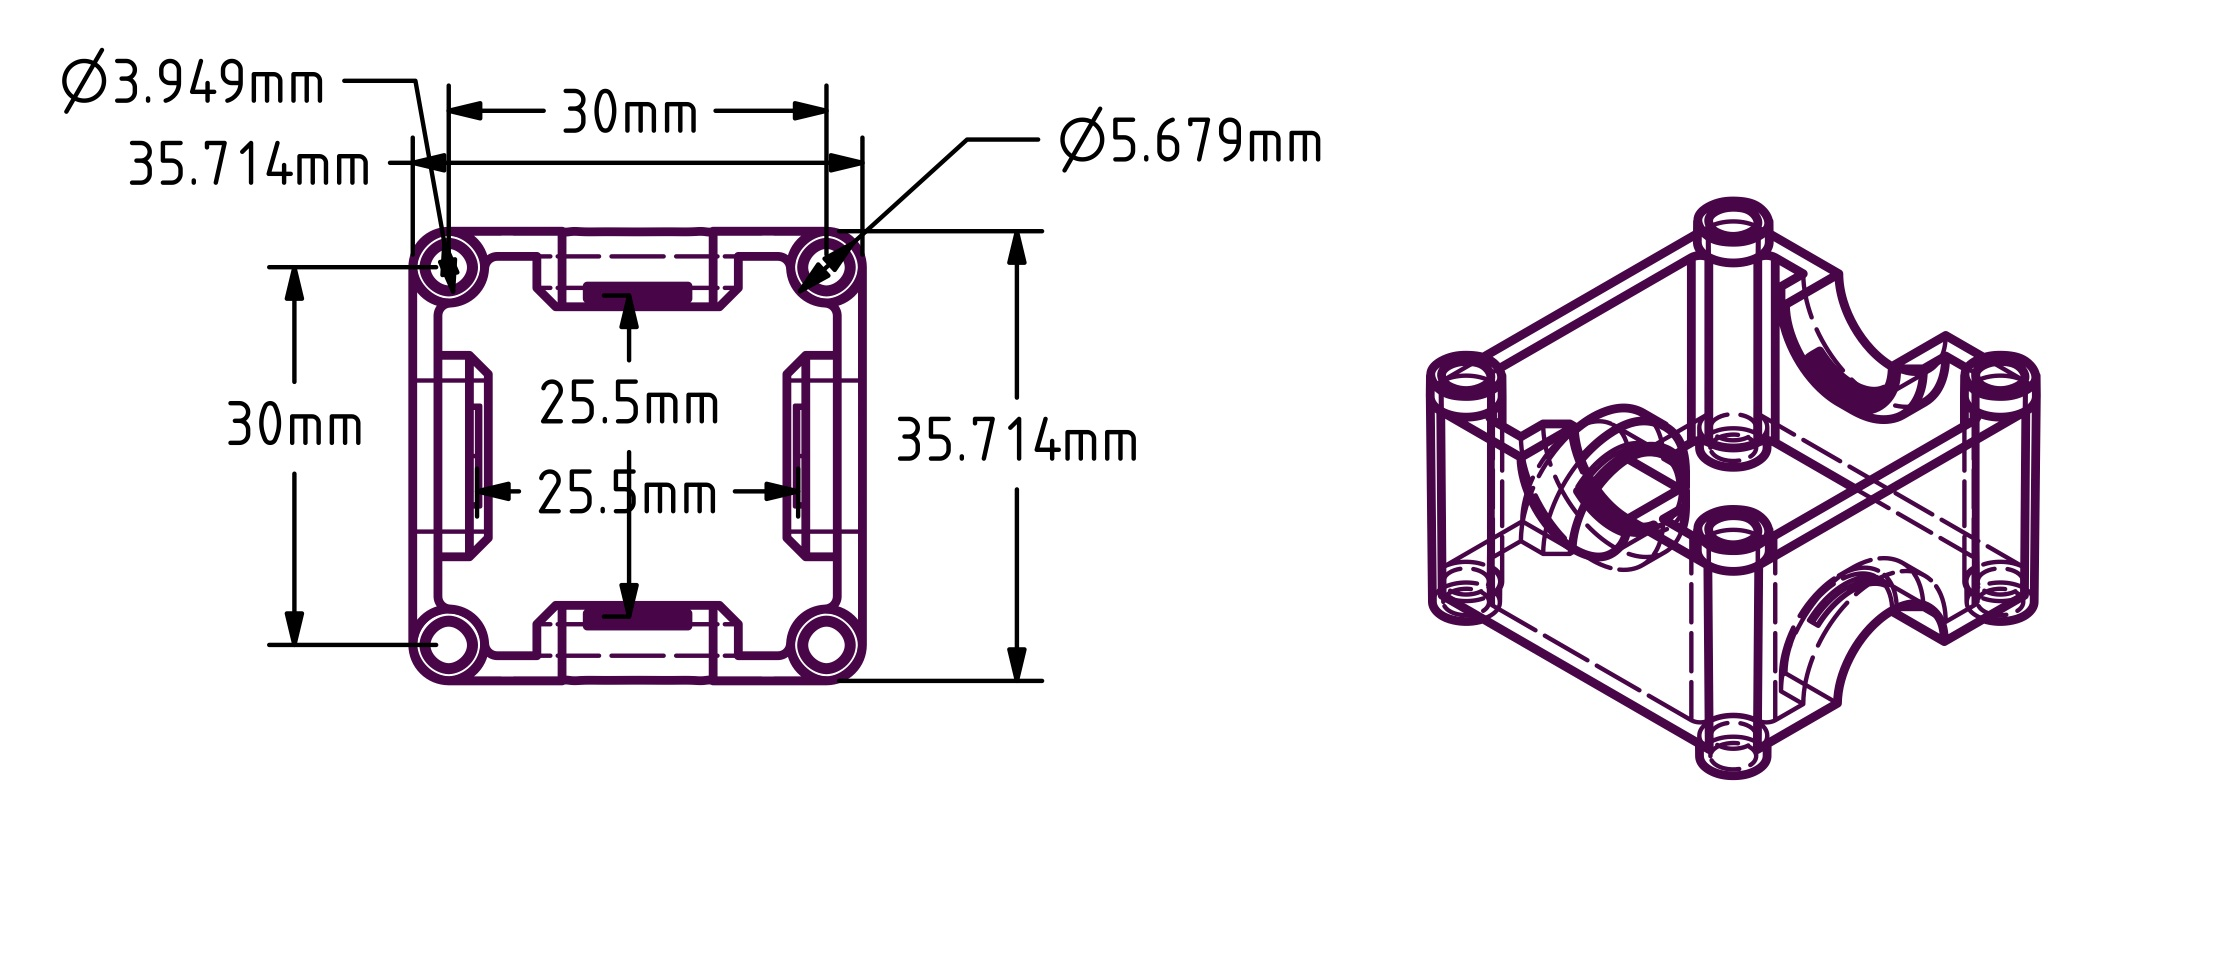 Build Your Own Ultimaker?